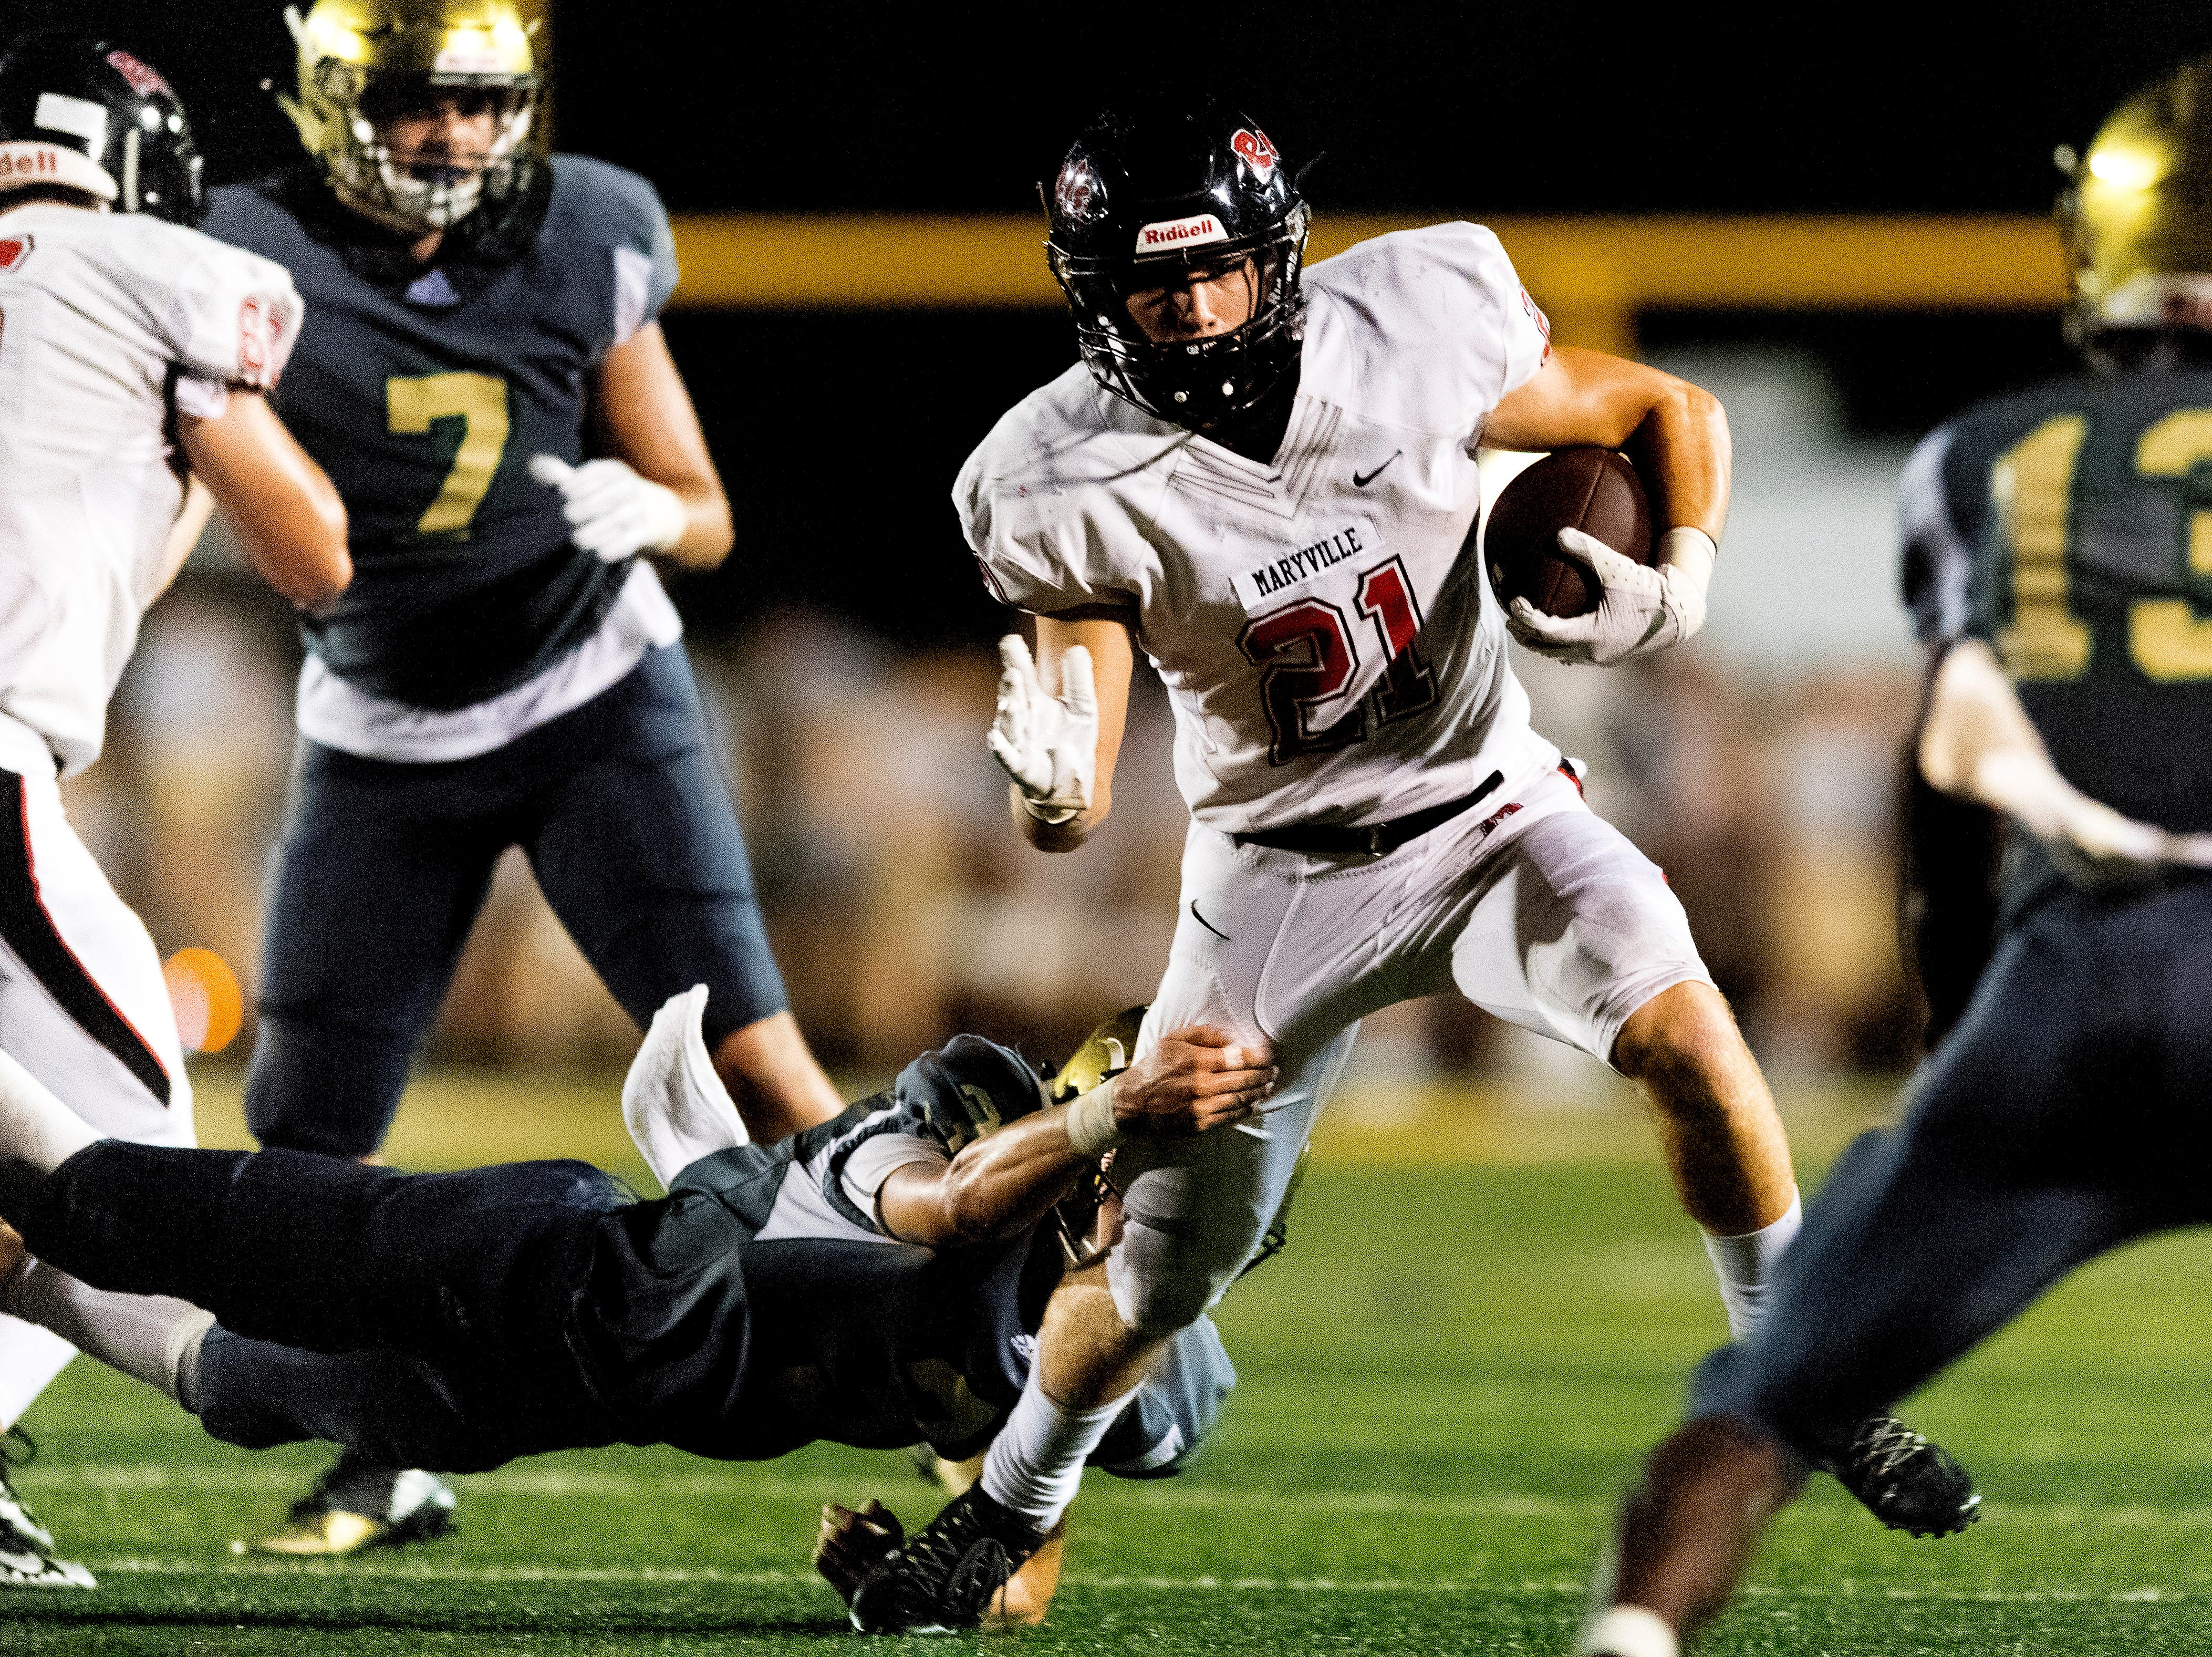 Maryville's Bryson Teffeteller (21) runs past the Catholic defense during a football game between Maryville and Catholic at Catholic High School in Knoxville, Tennessee on Friday, August 17, 2018.